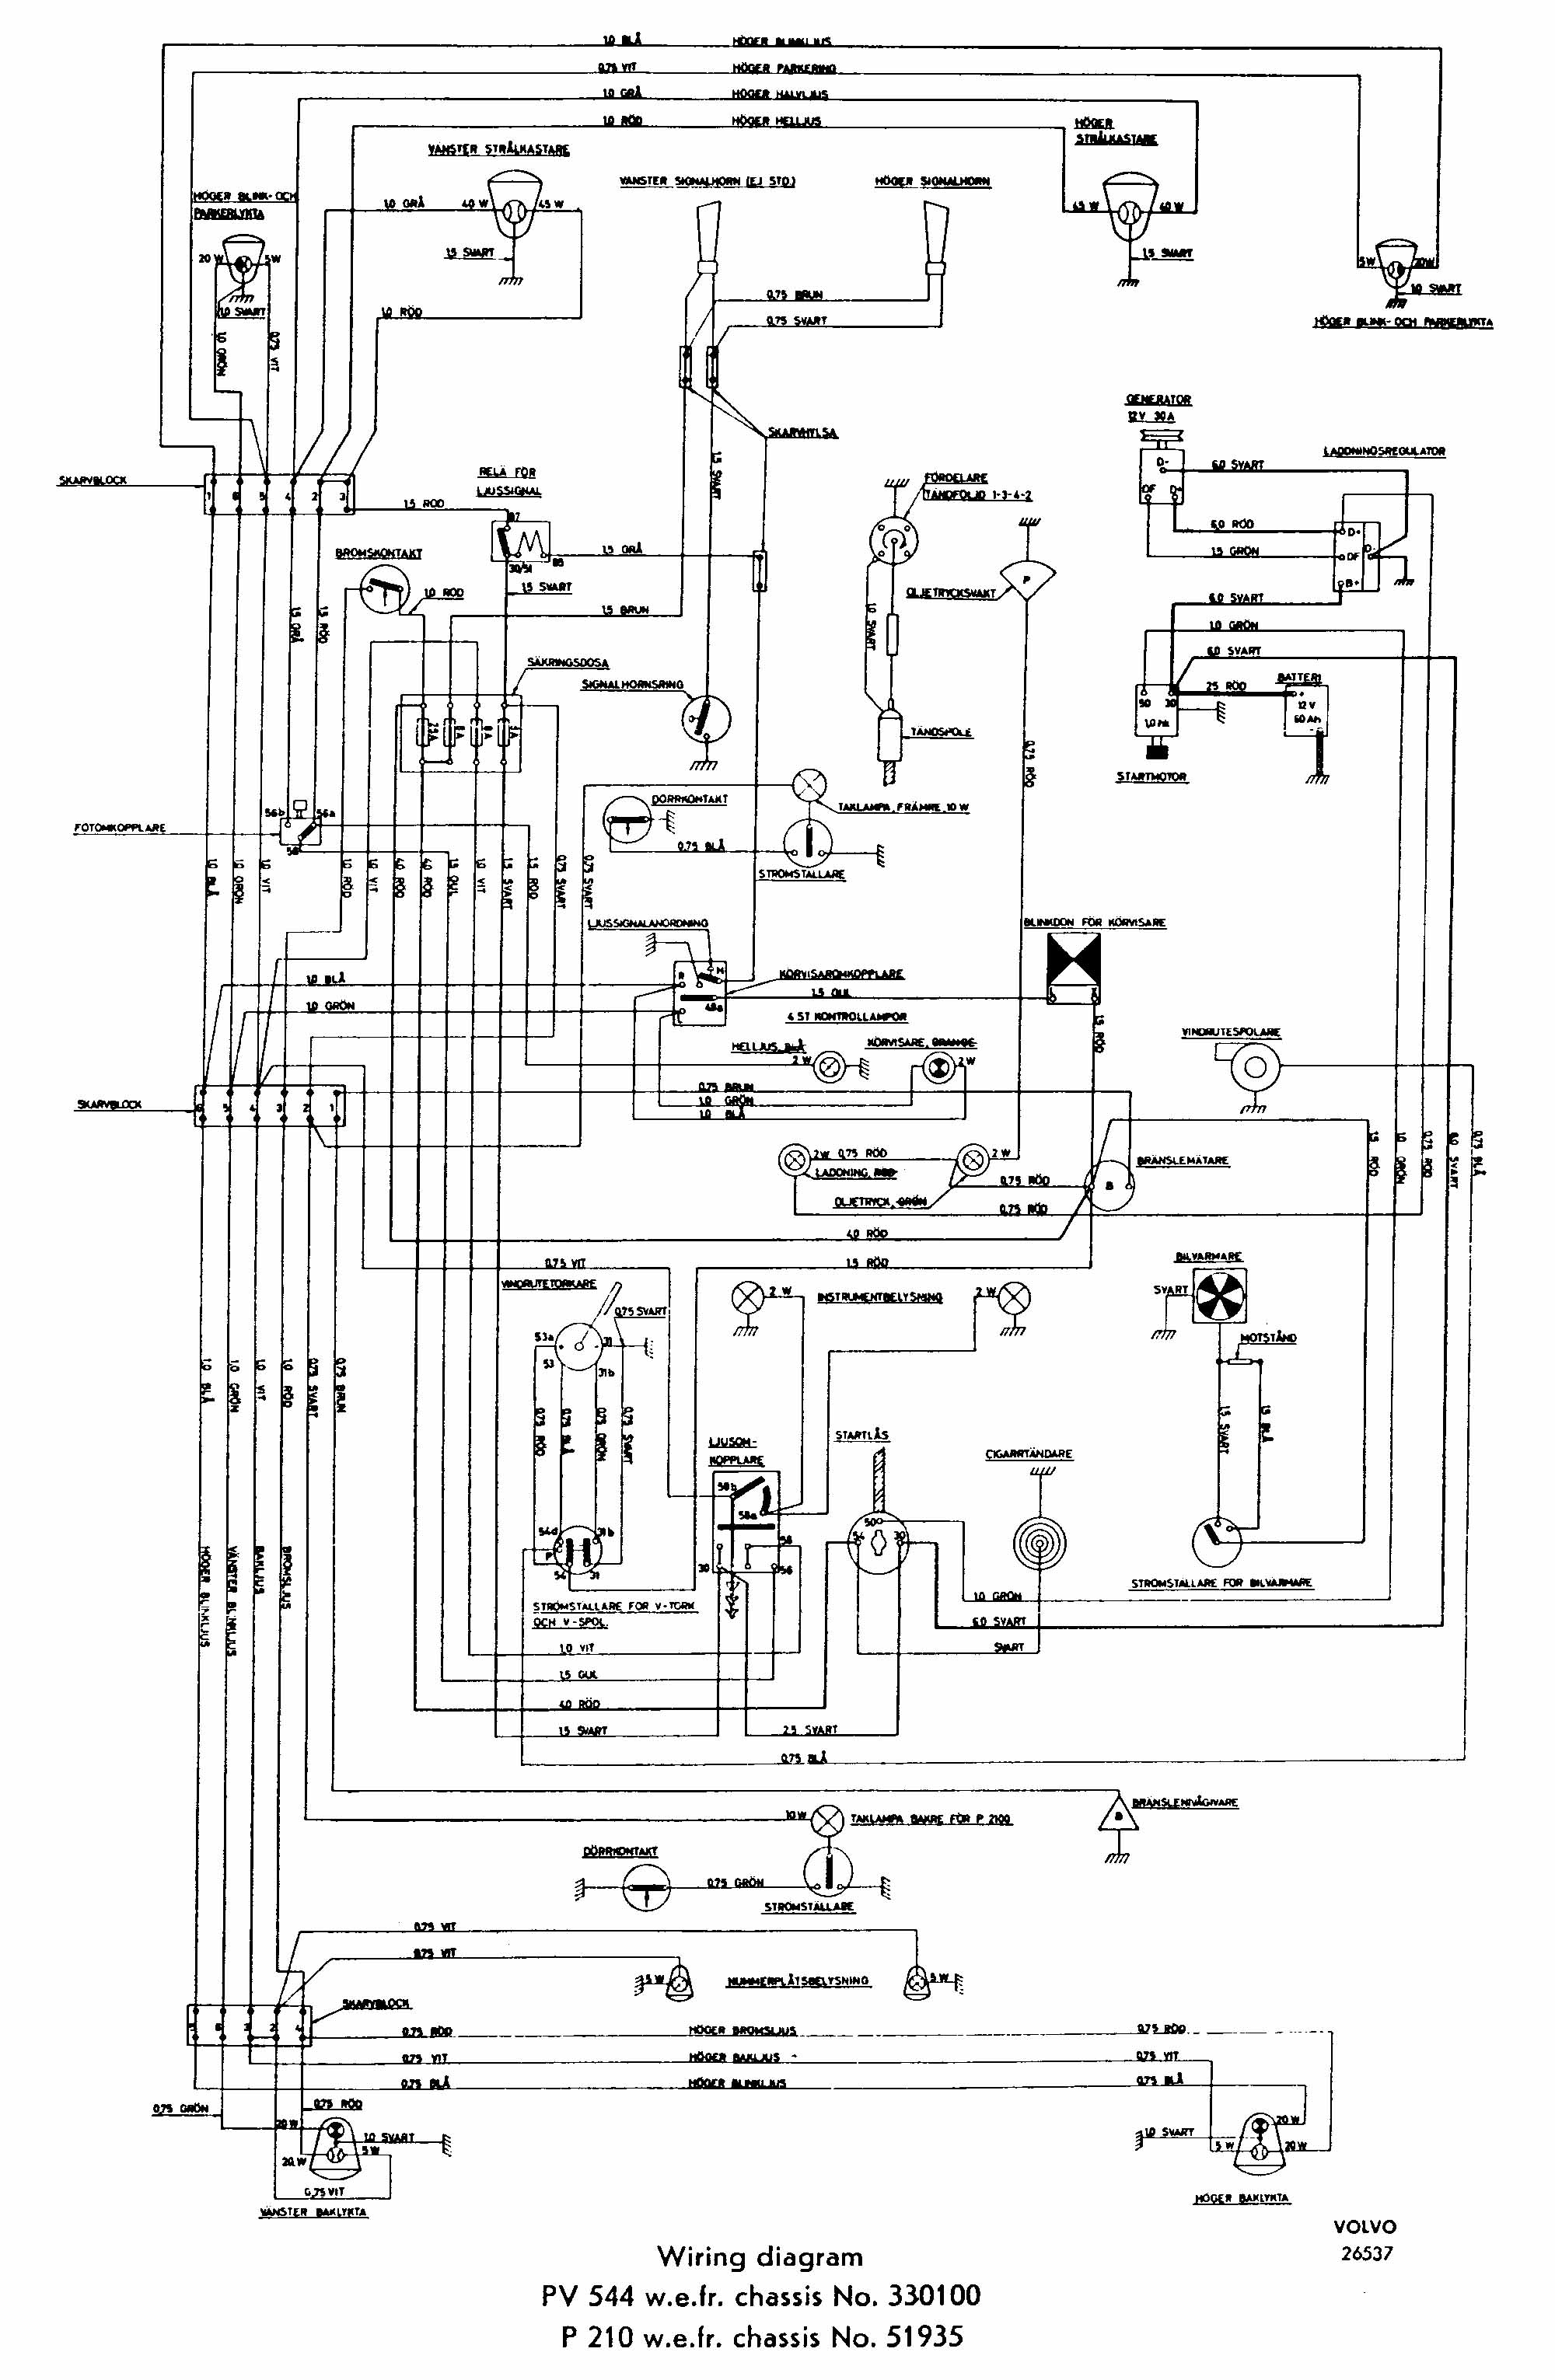 2002 Subaru Outback Fuse Box Diagram together with One Wire Alternator Wiring Diagram Chevy Inside Ford Alternator Wiring Diagram likewise Service 20notes as well External Transmission Cooler furthermore Sony Car Stereo Wiring Diagram. on 2006 mustang wiring diagram